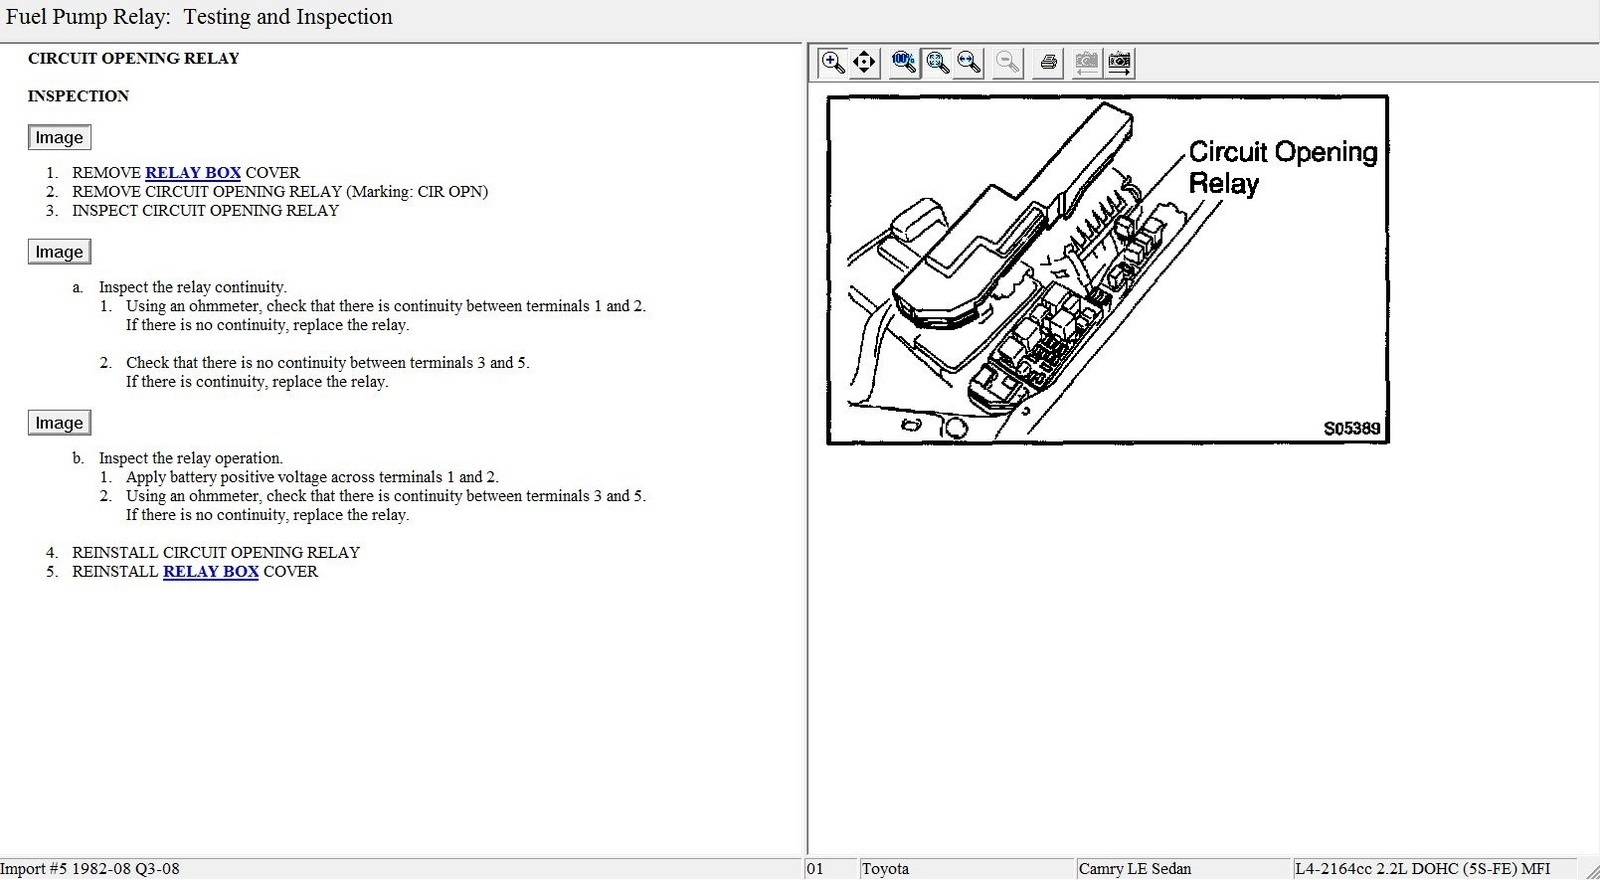 horn wiring diagram with relay stewart warner temp gauge toyota camry questions where is fuel pump 2001 4 cyl